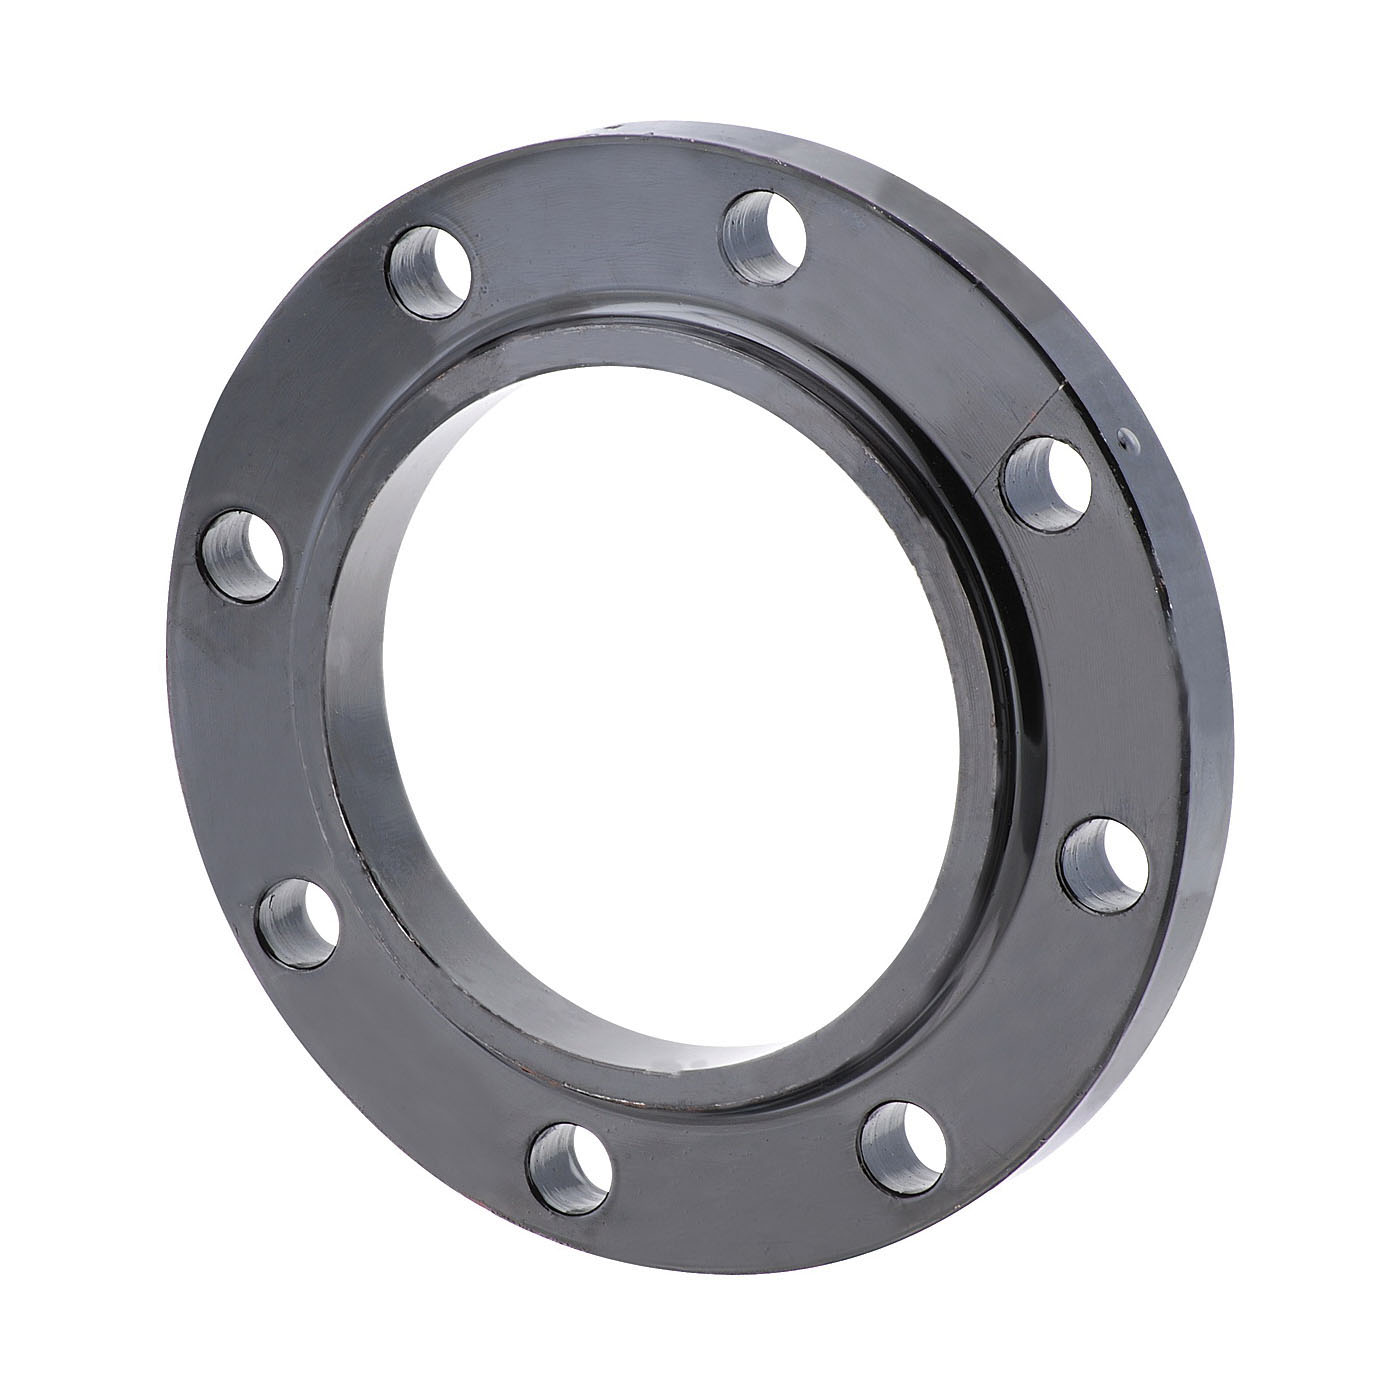 Matco-Norca™ MN150LF05 Flat Face Lap Joint Flange, 1 in, Carbon Steel, 150 lb